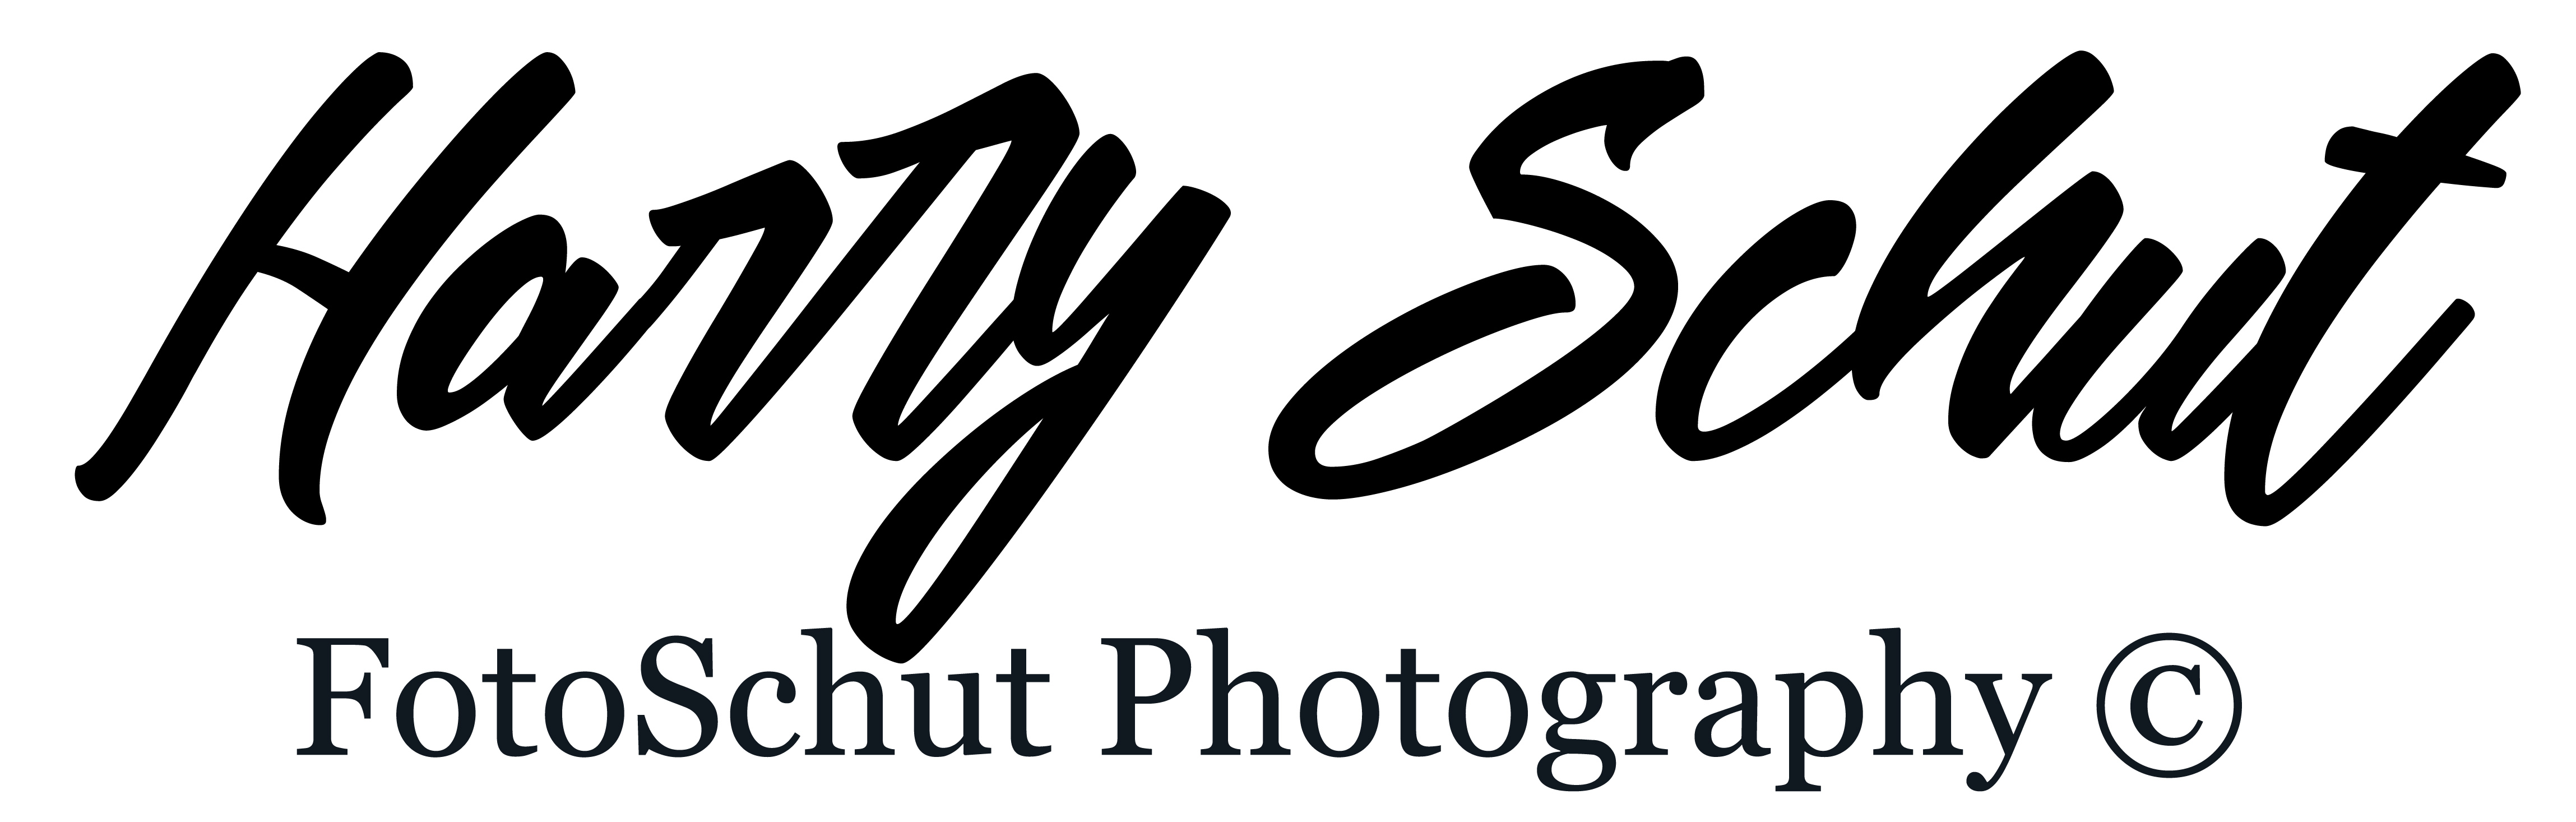 FotoSchut Photography